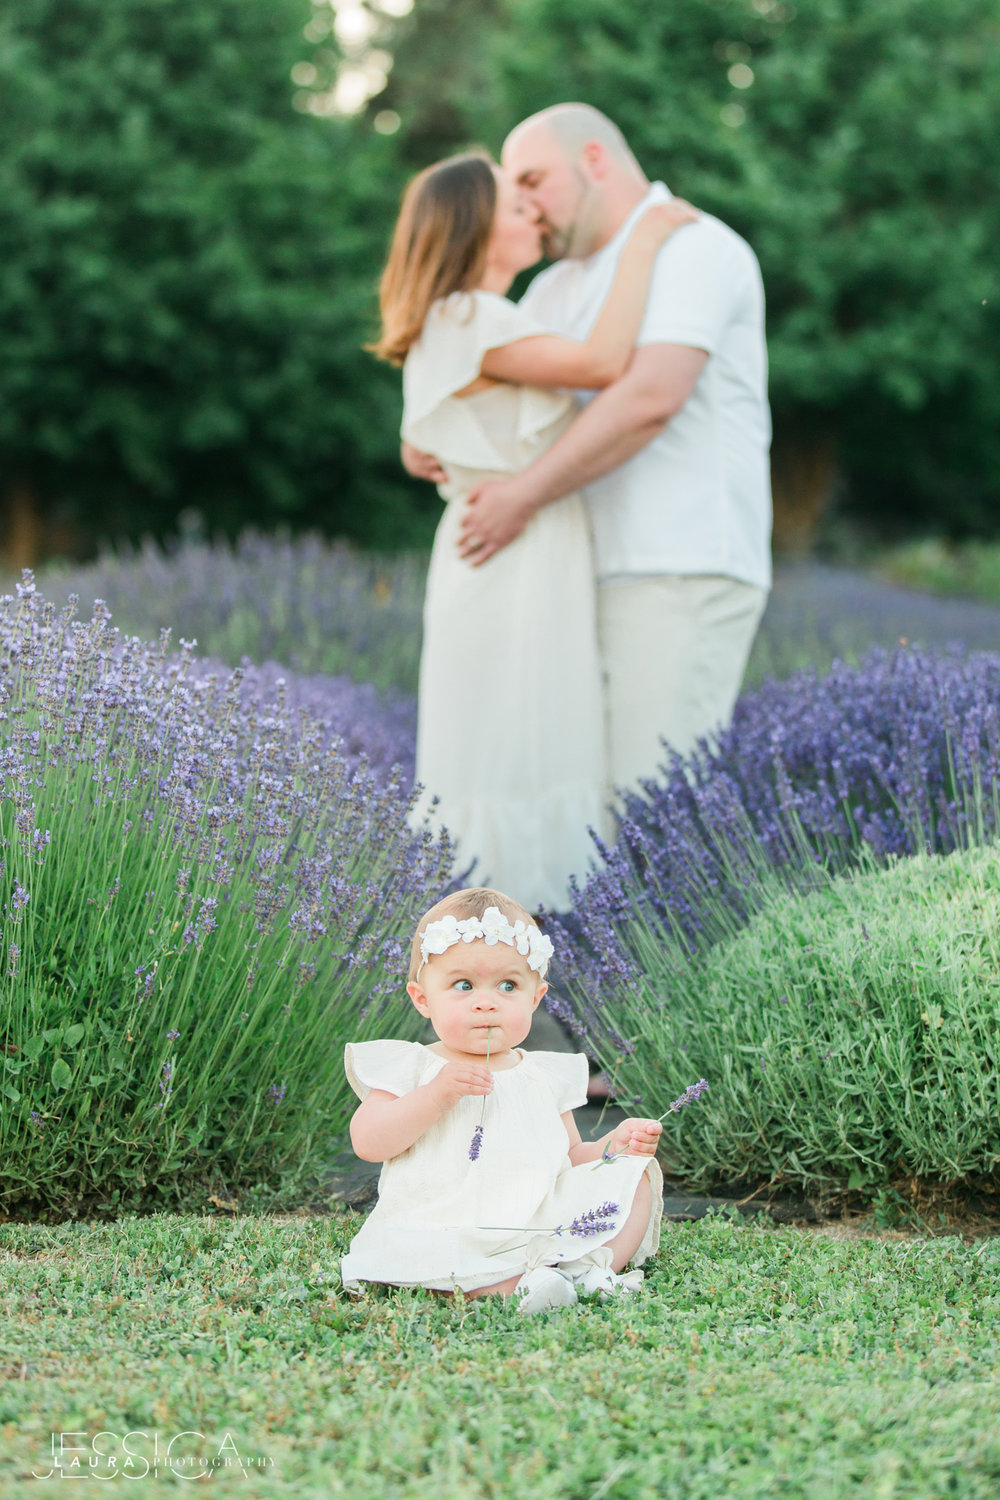 yunin-family-lavendar-WEB (66 of 82).jpg